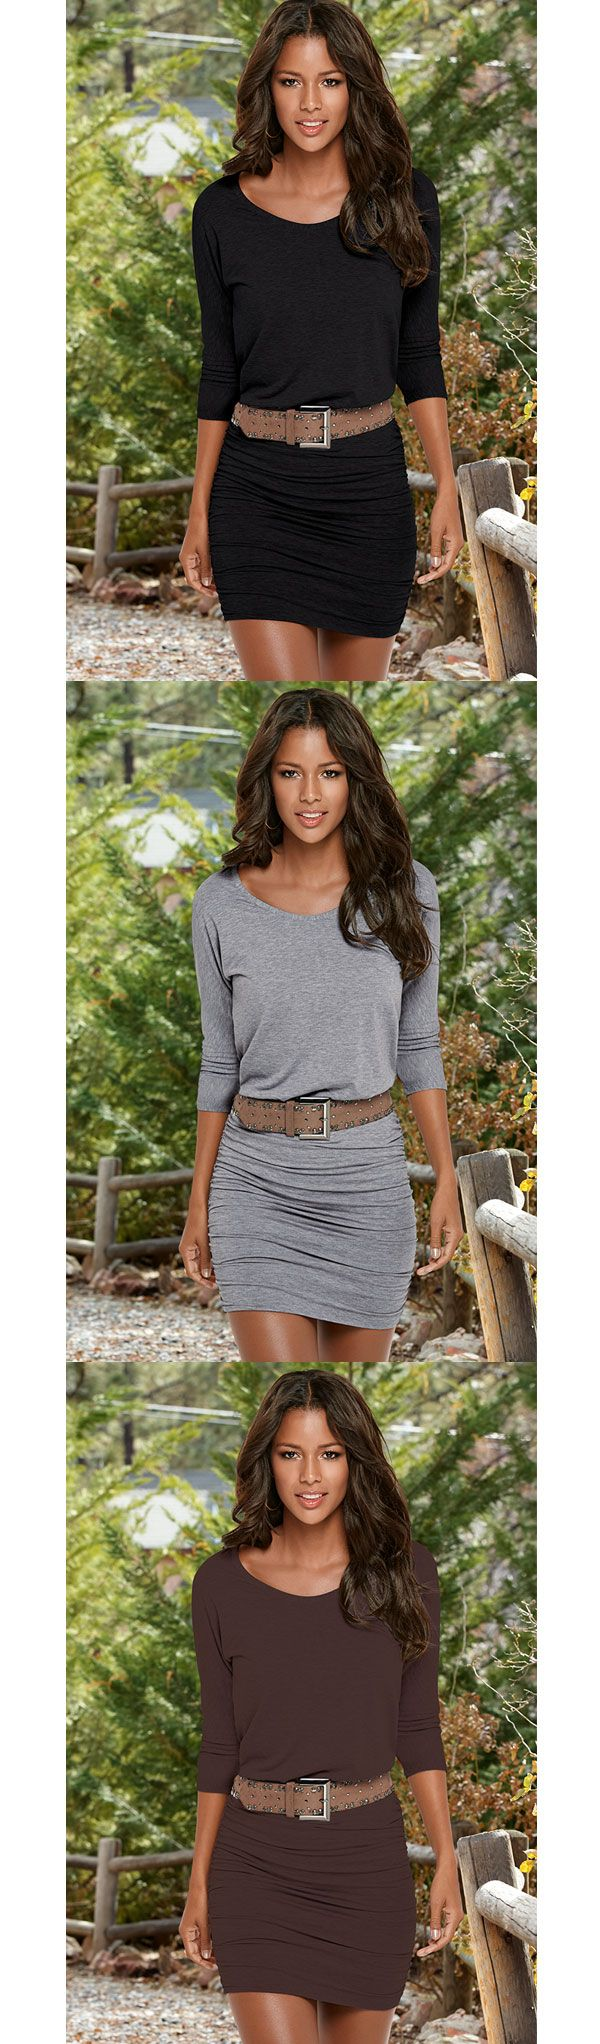 The fall basic in three perfect colors. Venus ruched detail dress with stud detail belt.